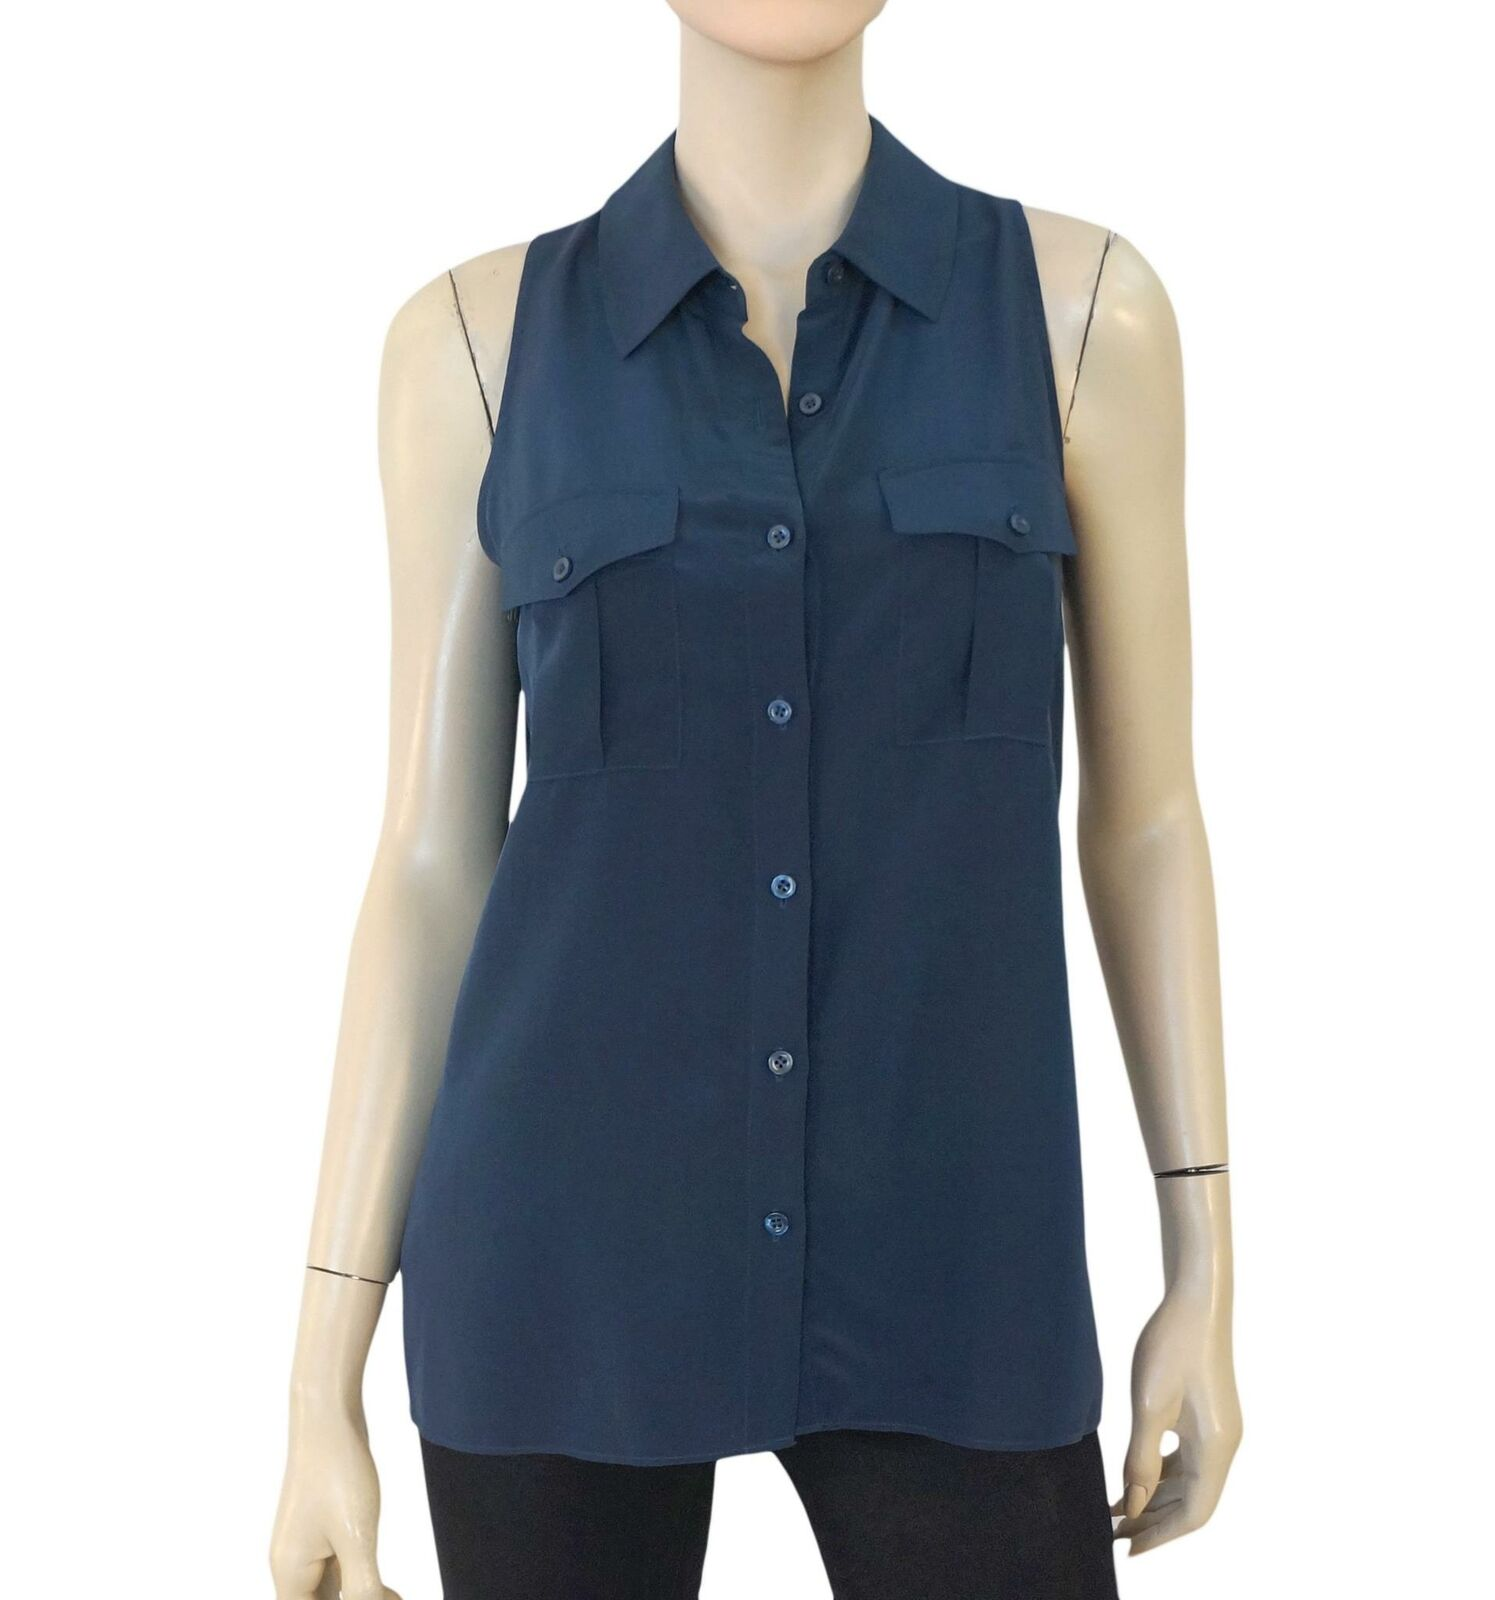 BARNEYS NEW YORK Sleeveless Navy Blau Silk Utility Blouse XS